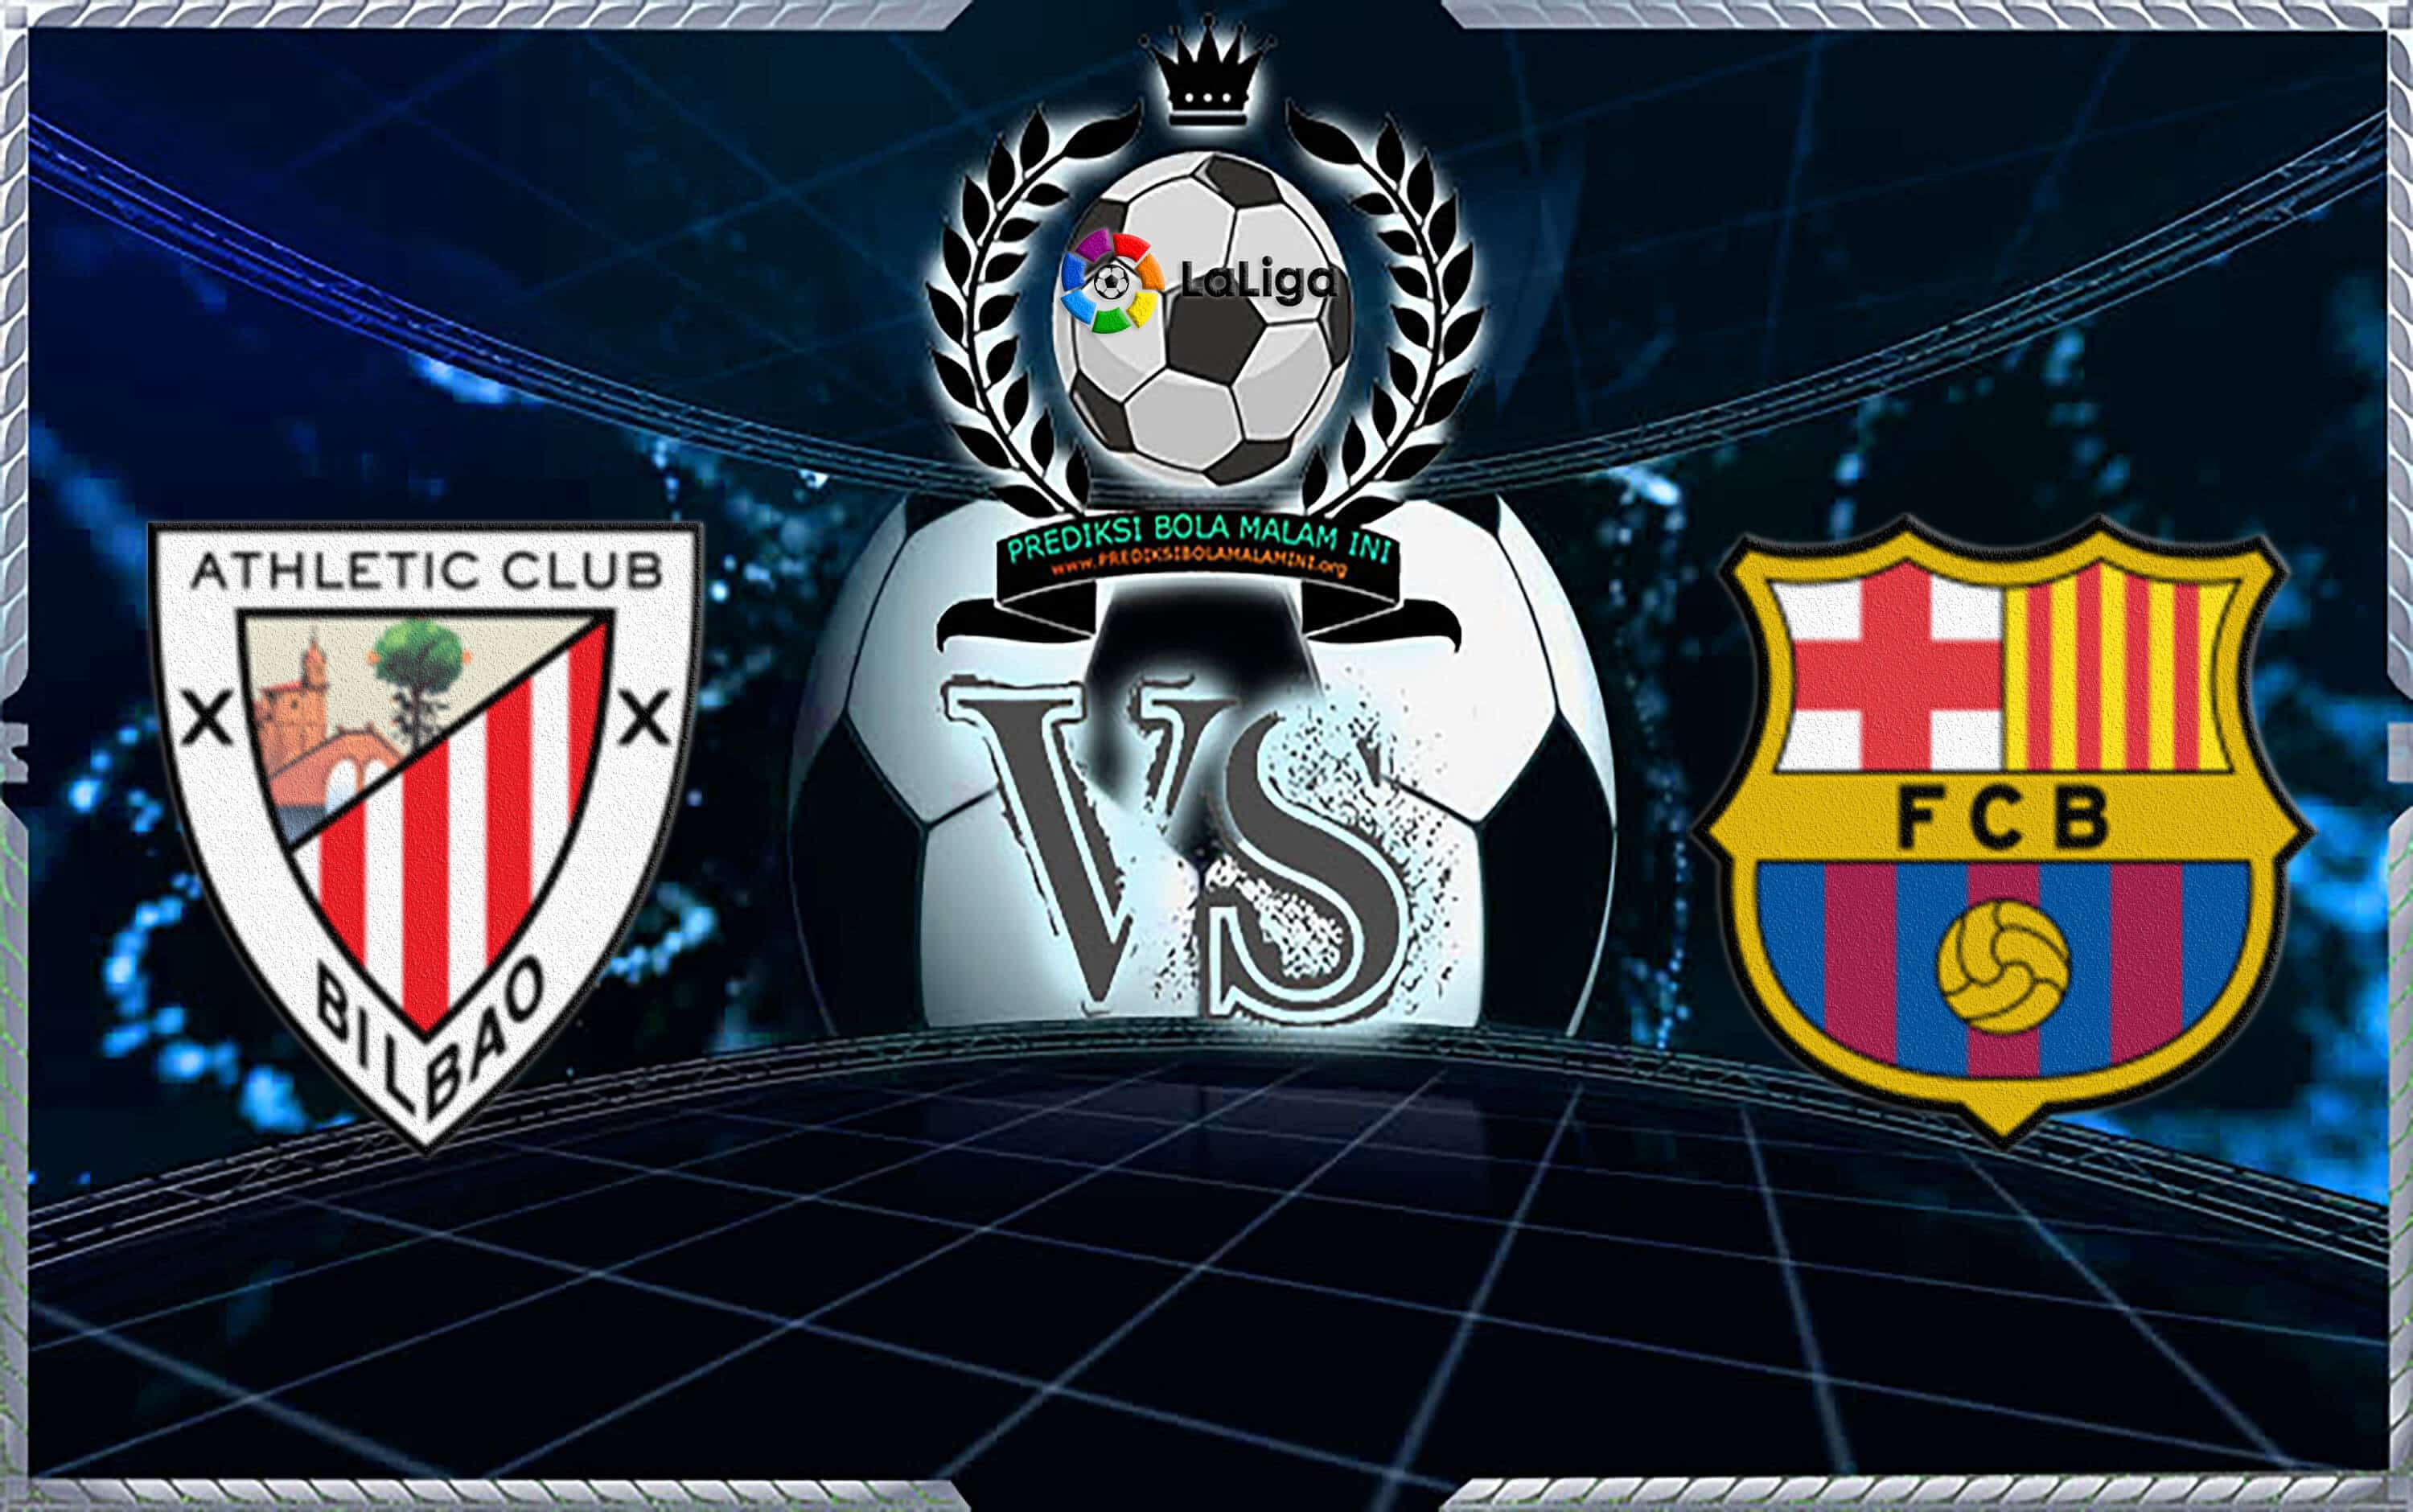 Skor Prediksi ATHLETIC CLUB Vs BARCELONA 11 februari 2019